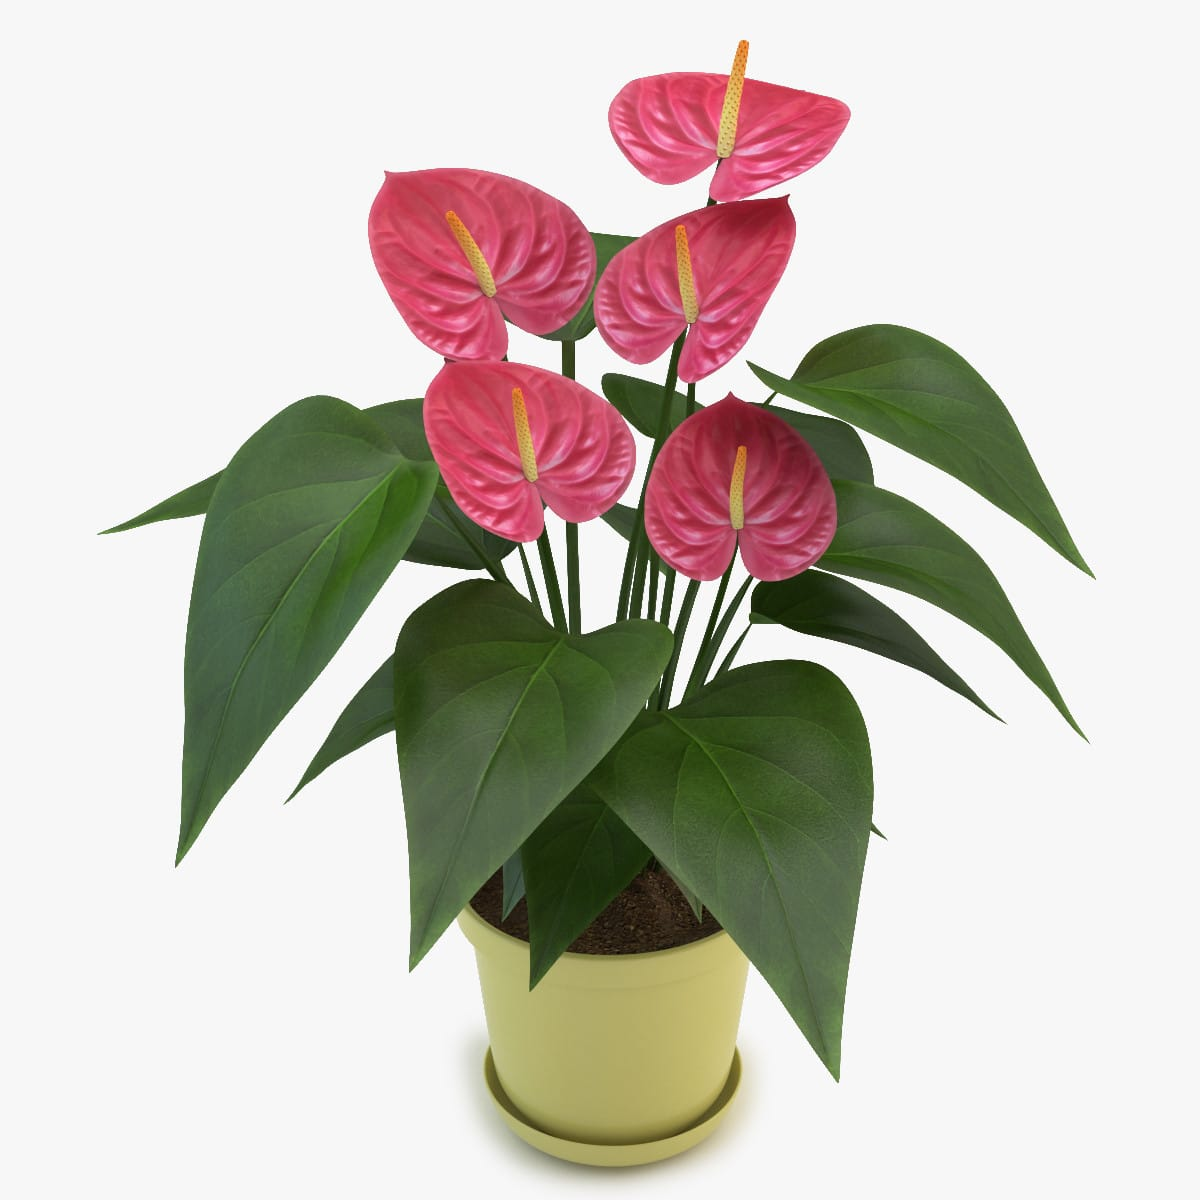 Антуриум андрианум микс в горшке (Anthurium andreanum mix)